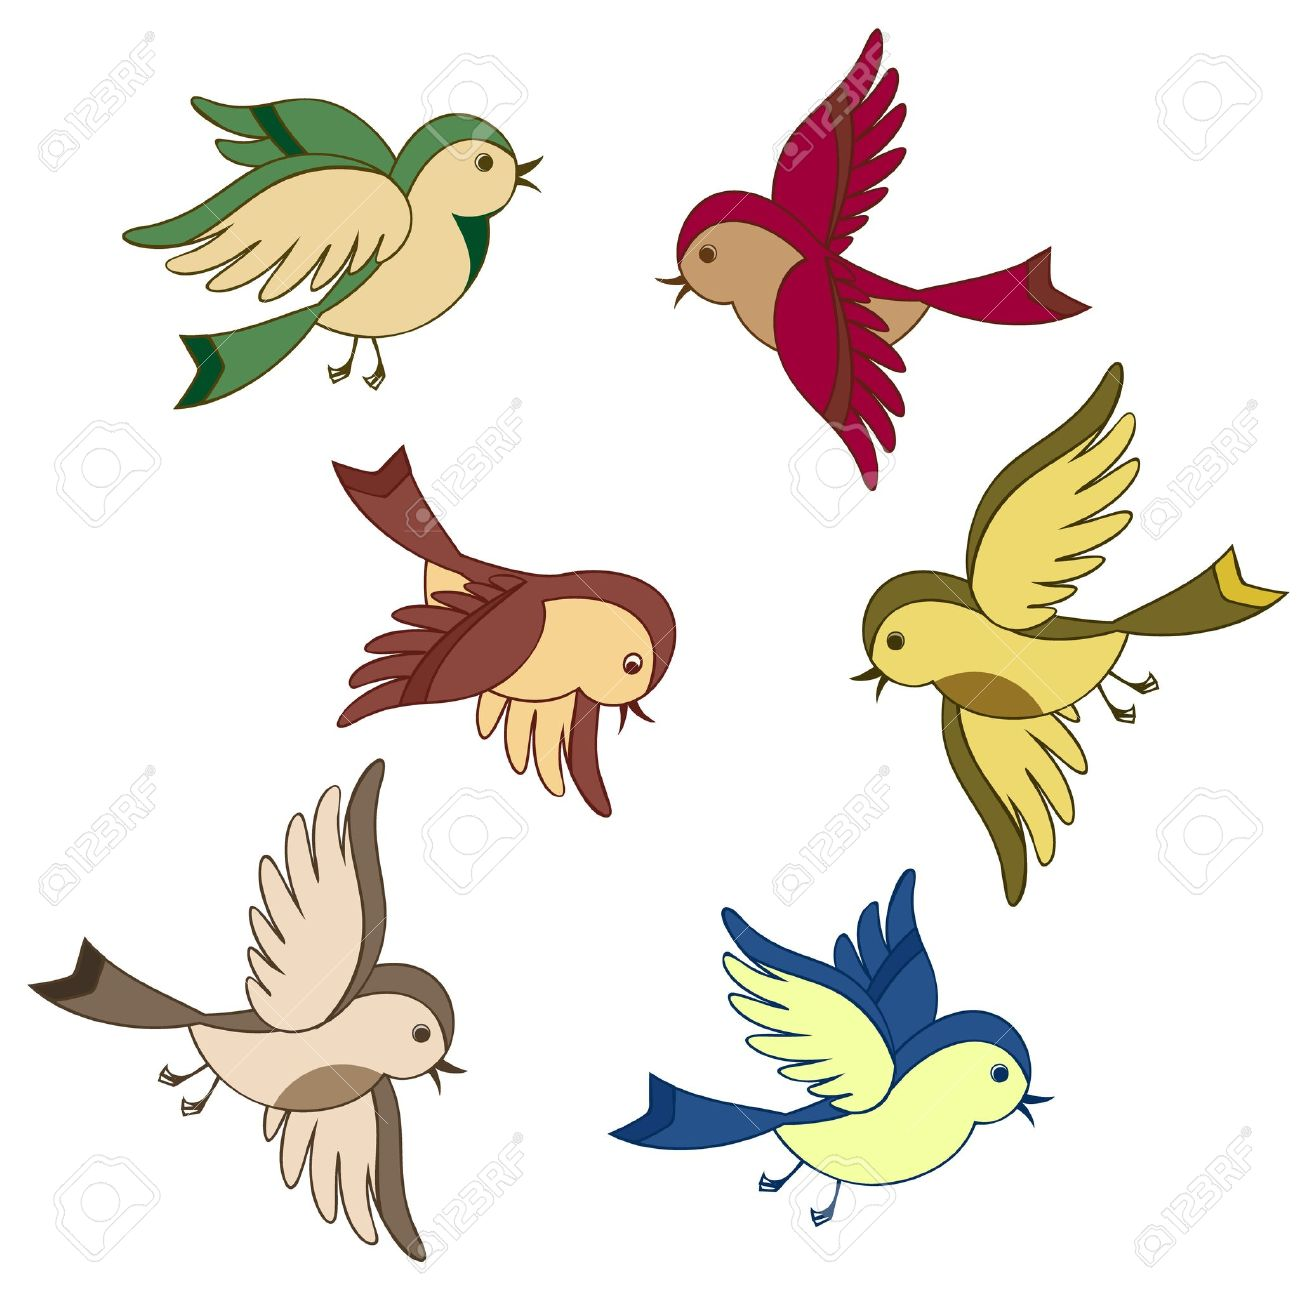 vector set of flying bird cartoon isolated royalty free cliparts rh 123rf com flying bird cartoon images flying bird cartoon pics